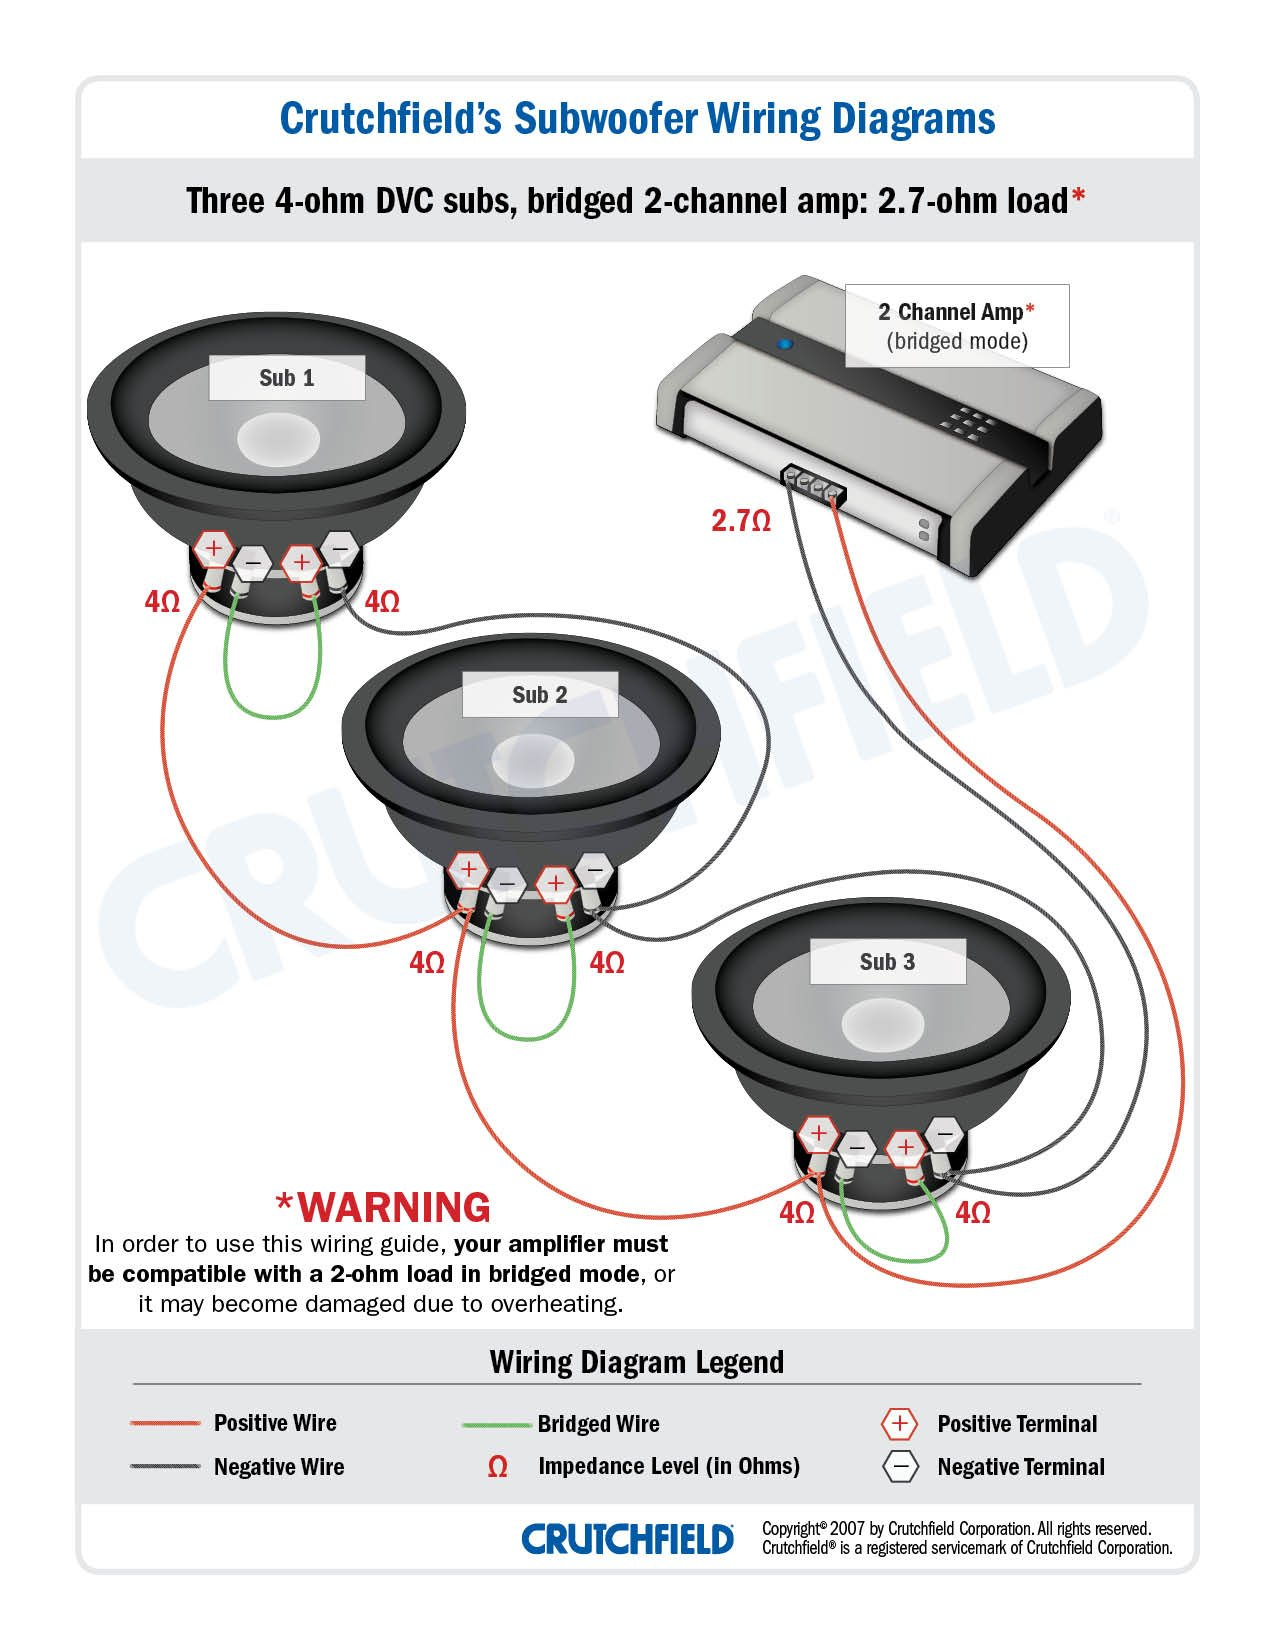 hight resolution of 3 dvc 4 ohm 2 ch low imp subwoofer wiring diagrams 4 ohm dvc wiring